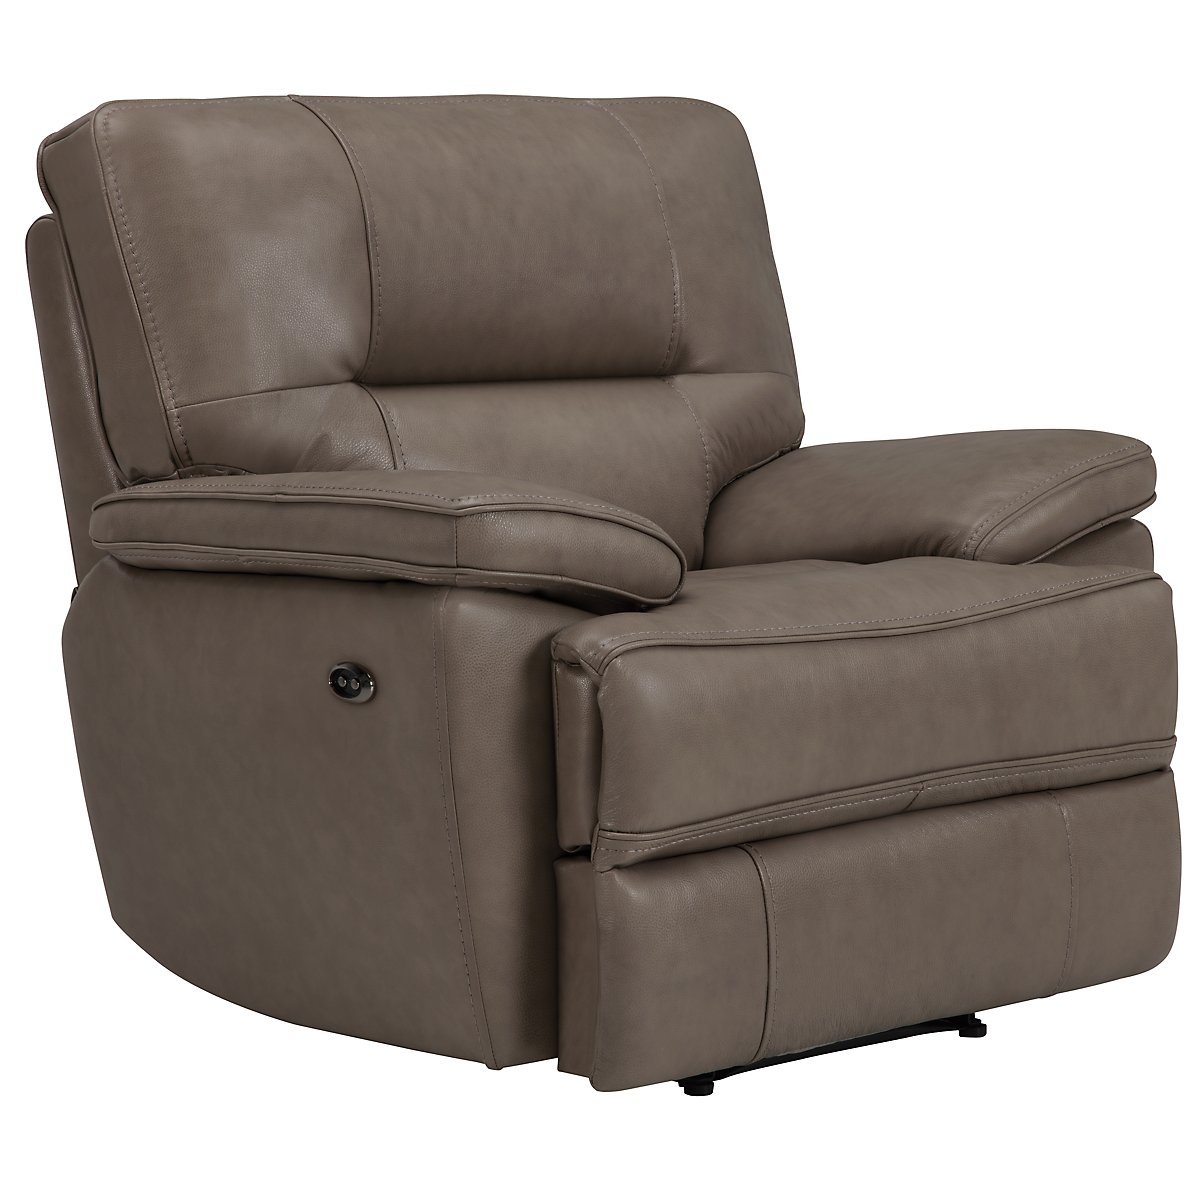 Clint Dk Taupe Leather & Vinyl Power Recliner